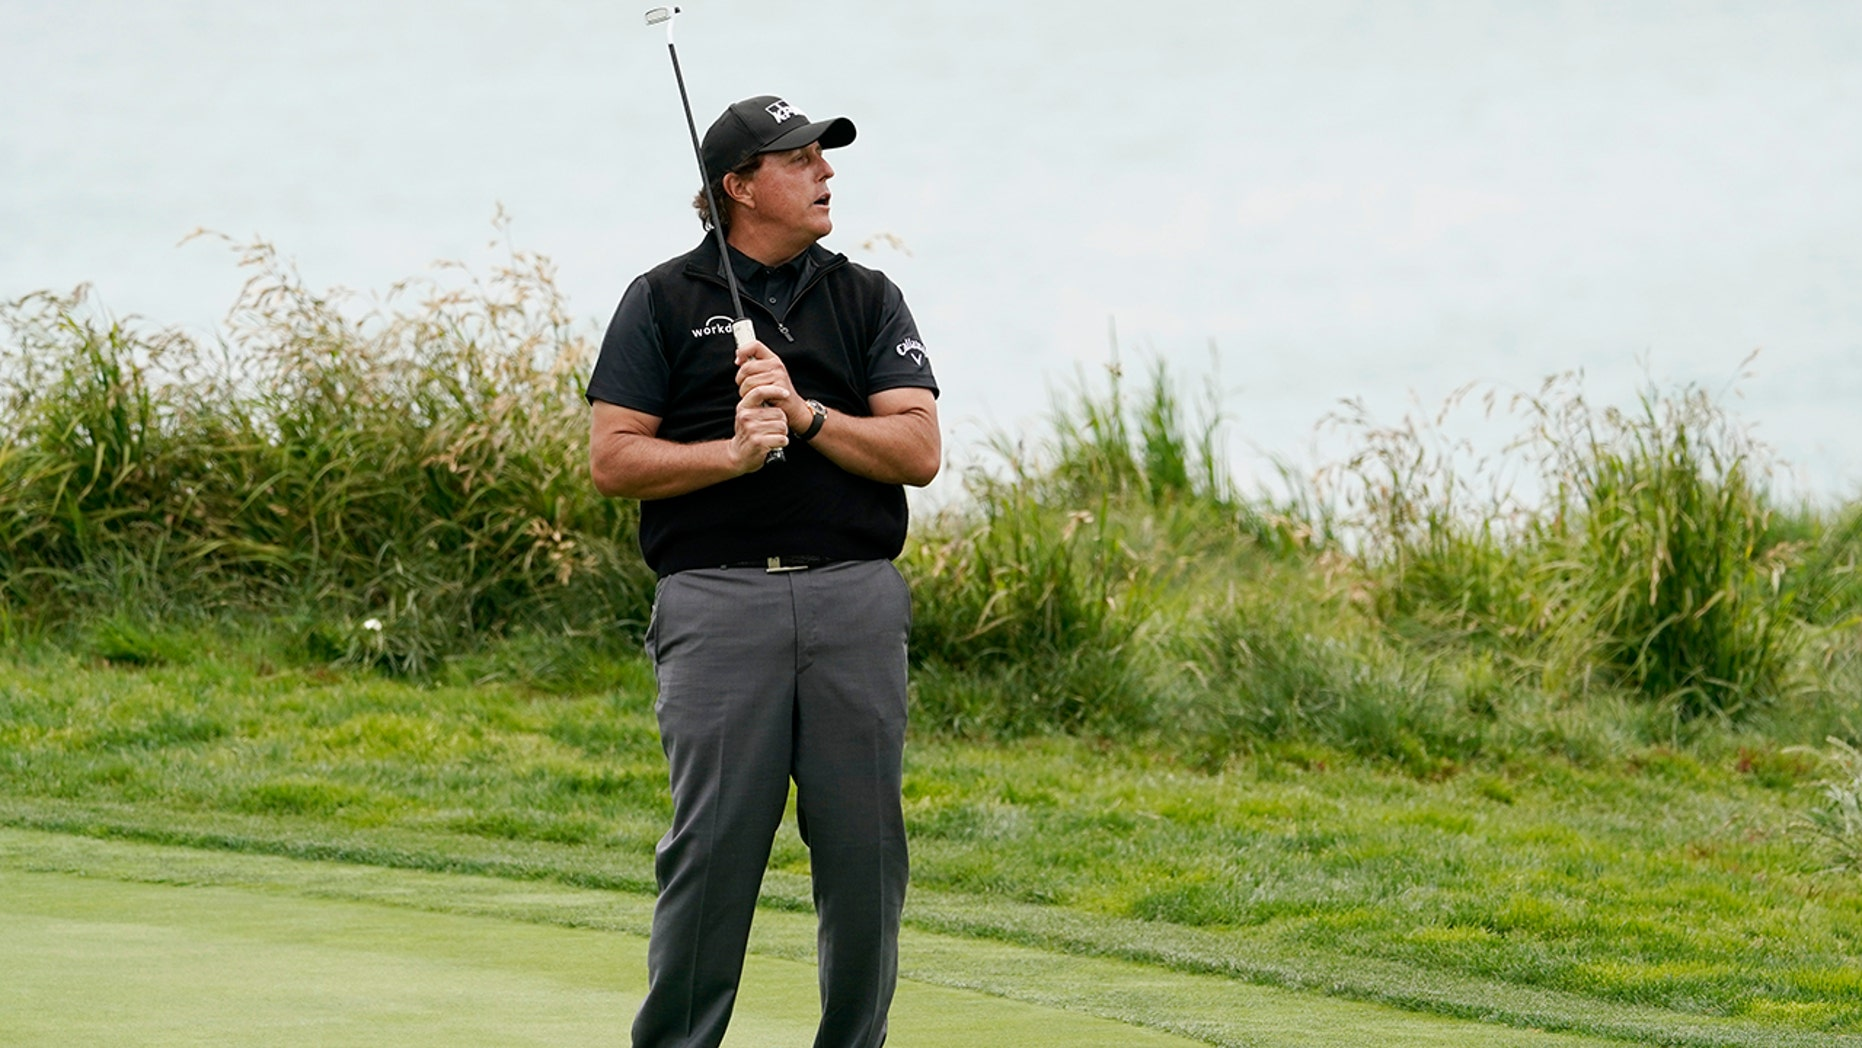 Phil Mickelson reacts after missing a putt on the ninth hole during the first round of the U.S. Open Championship golf tournament Thursday, June 13, 2019, in Pebble Beach, Calif. (AP Photo/David J. Phillip)